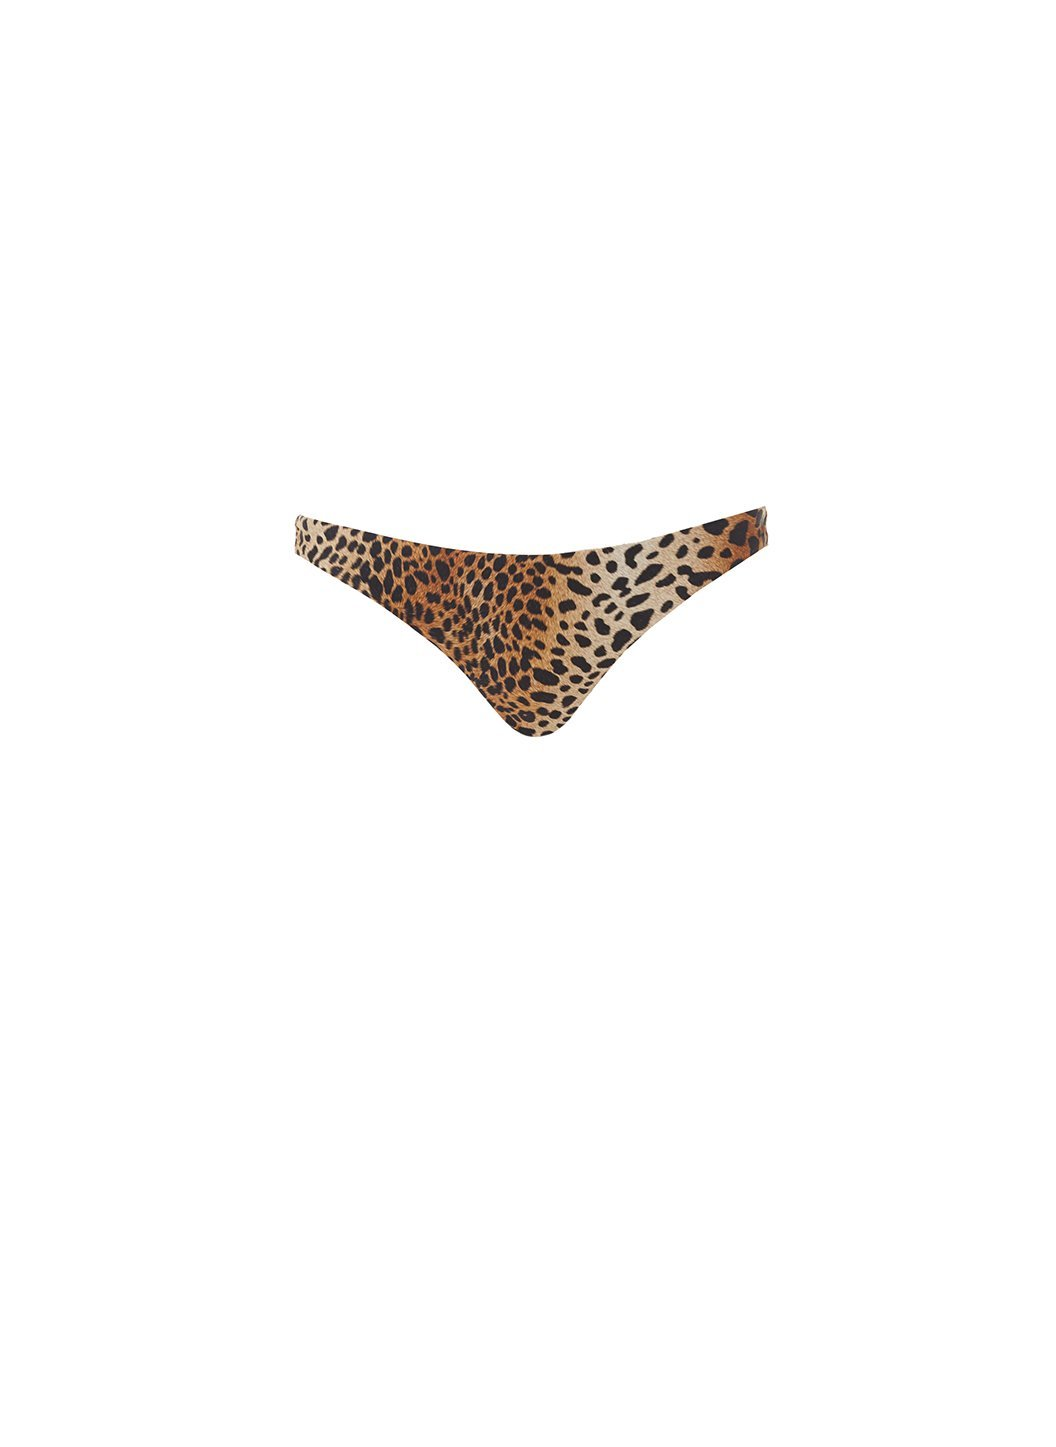 exclusive sisi skimpy bikini bottoms cheetah F_6a7f357a 2743 41f7 87af d197e3093a25